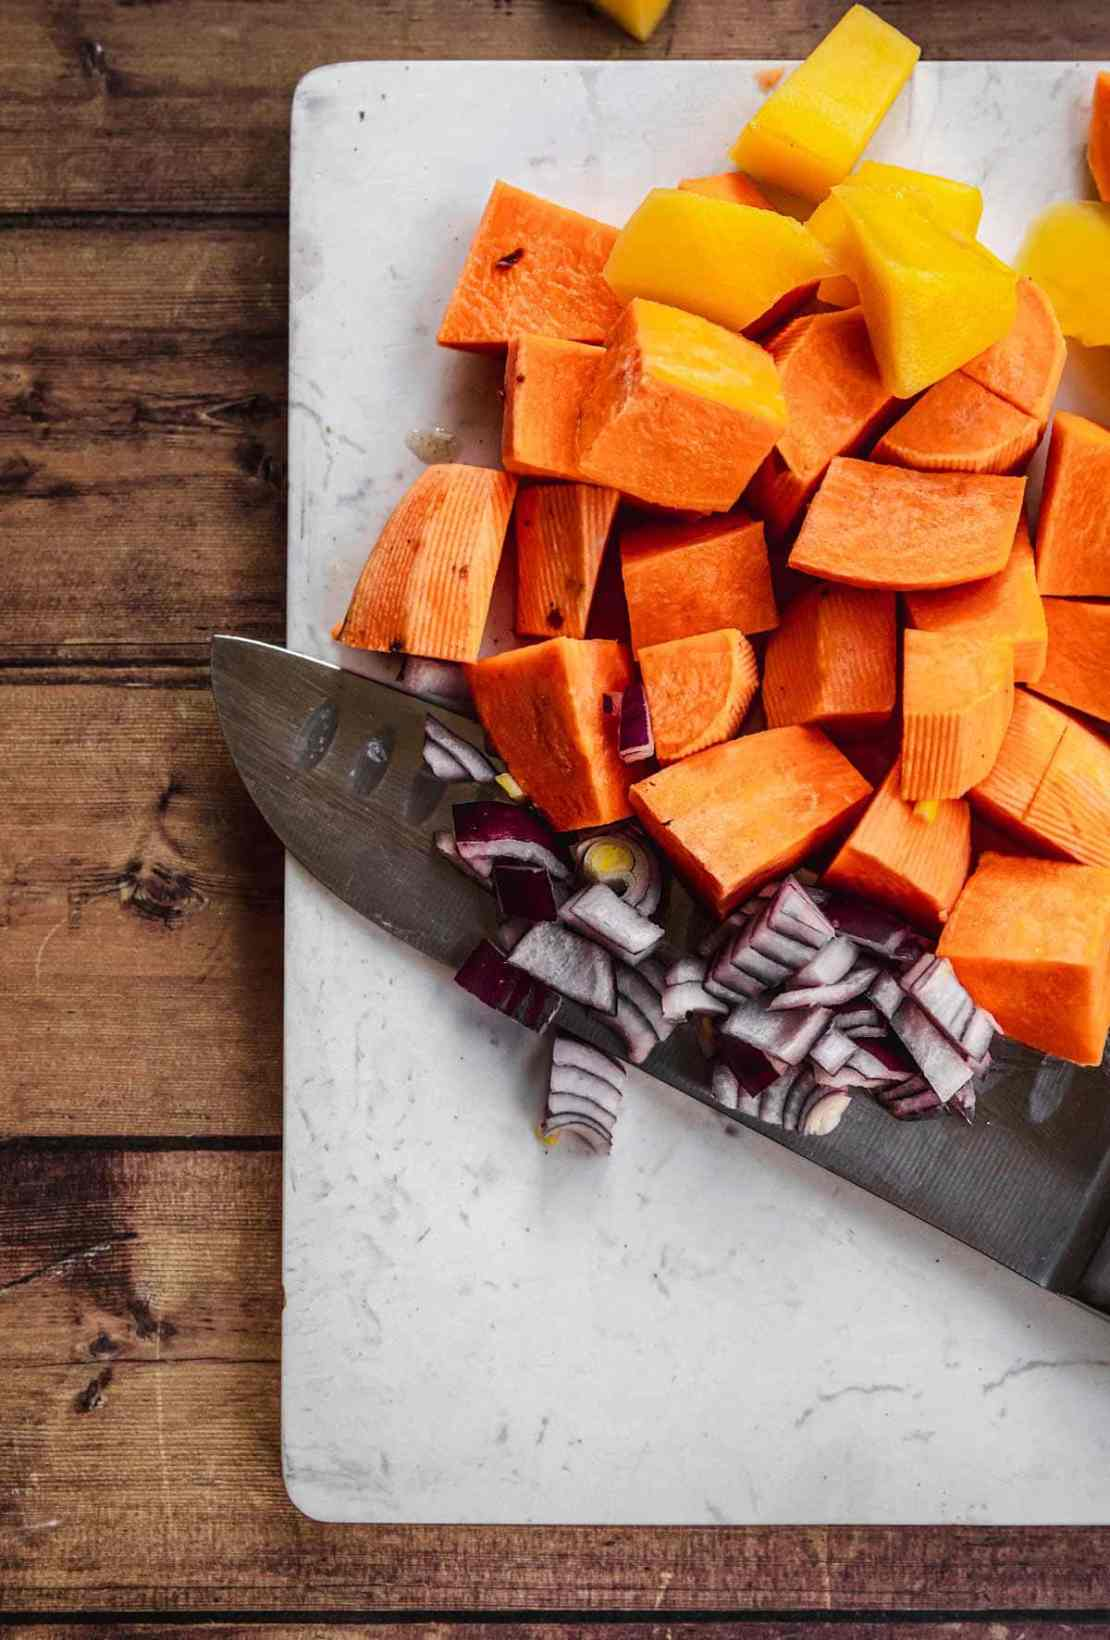 Baked African Sweet Potato Chicken chopped vegetables on cutting board